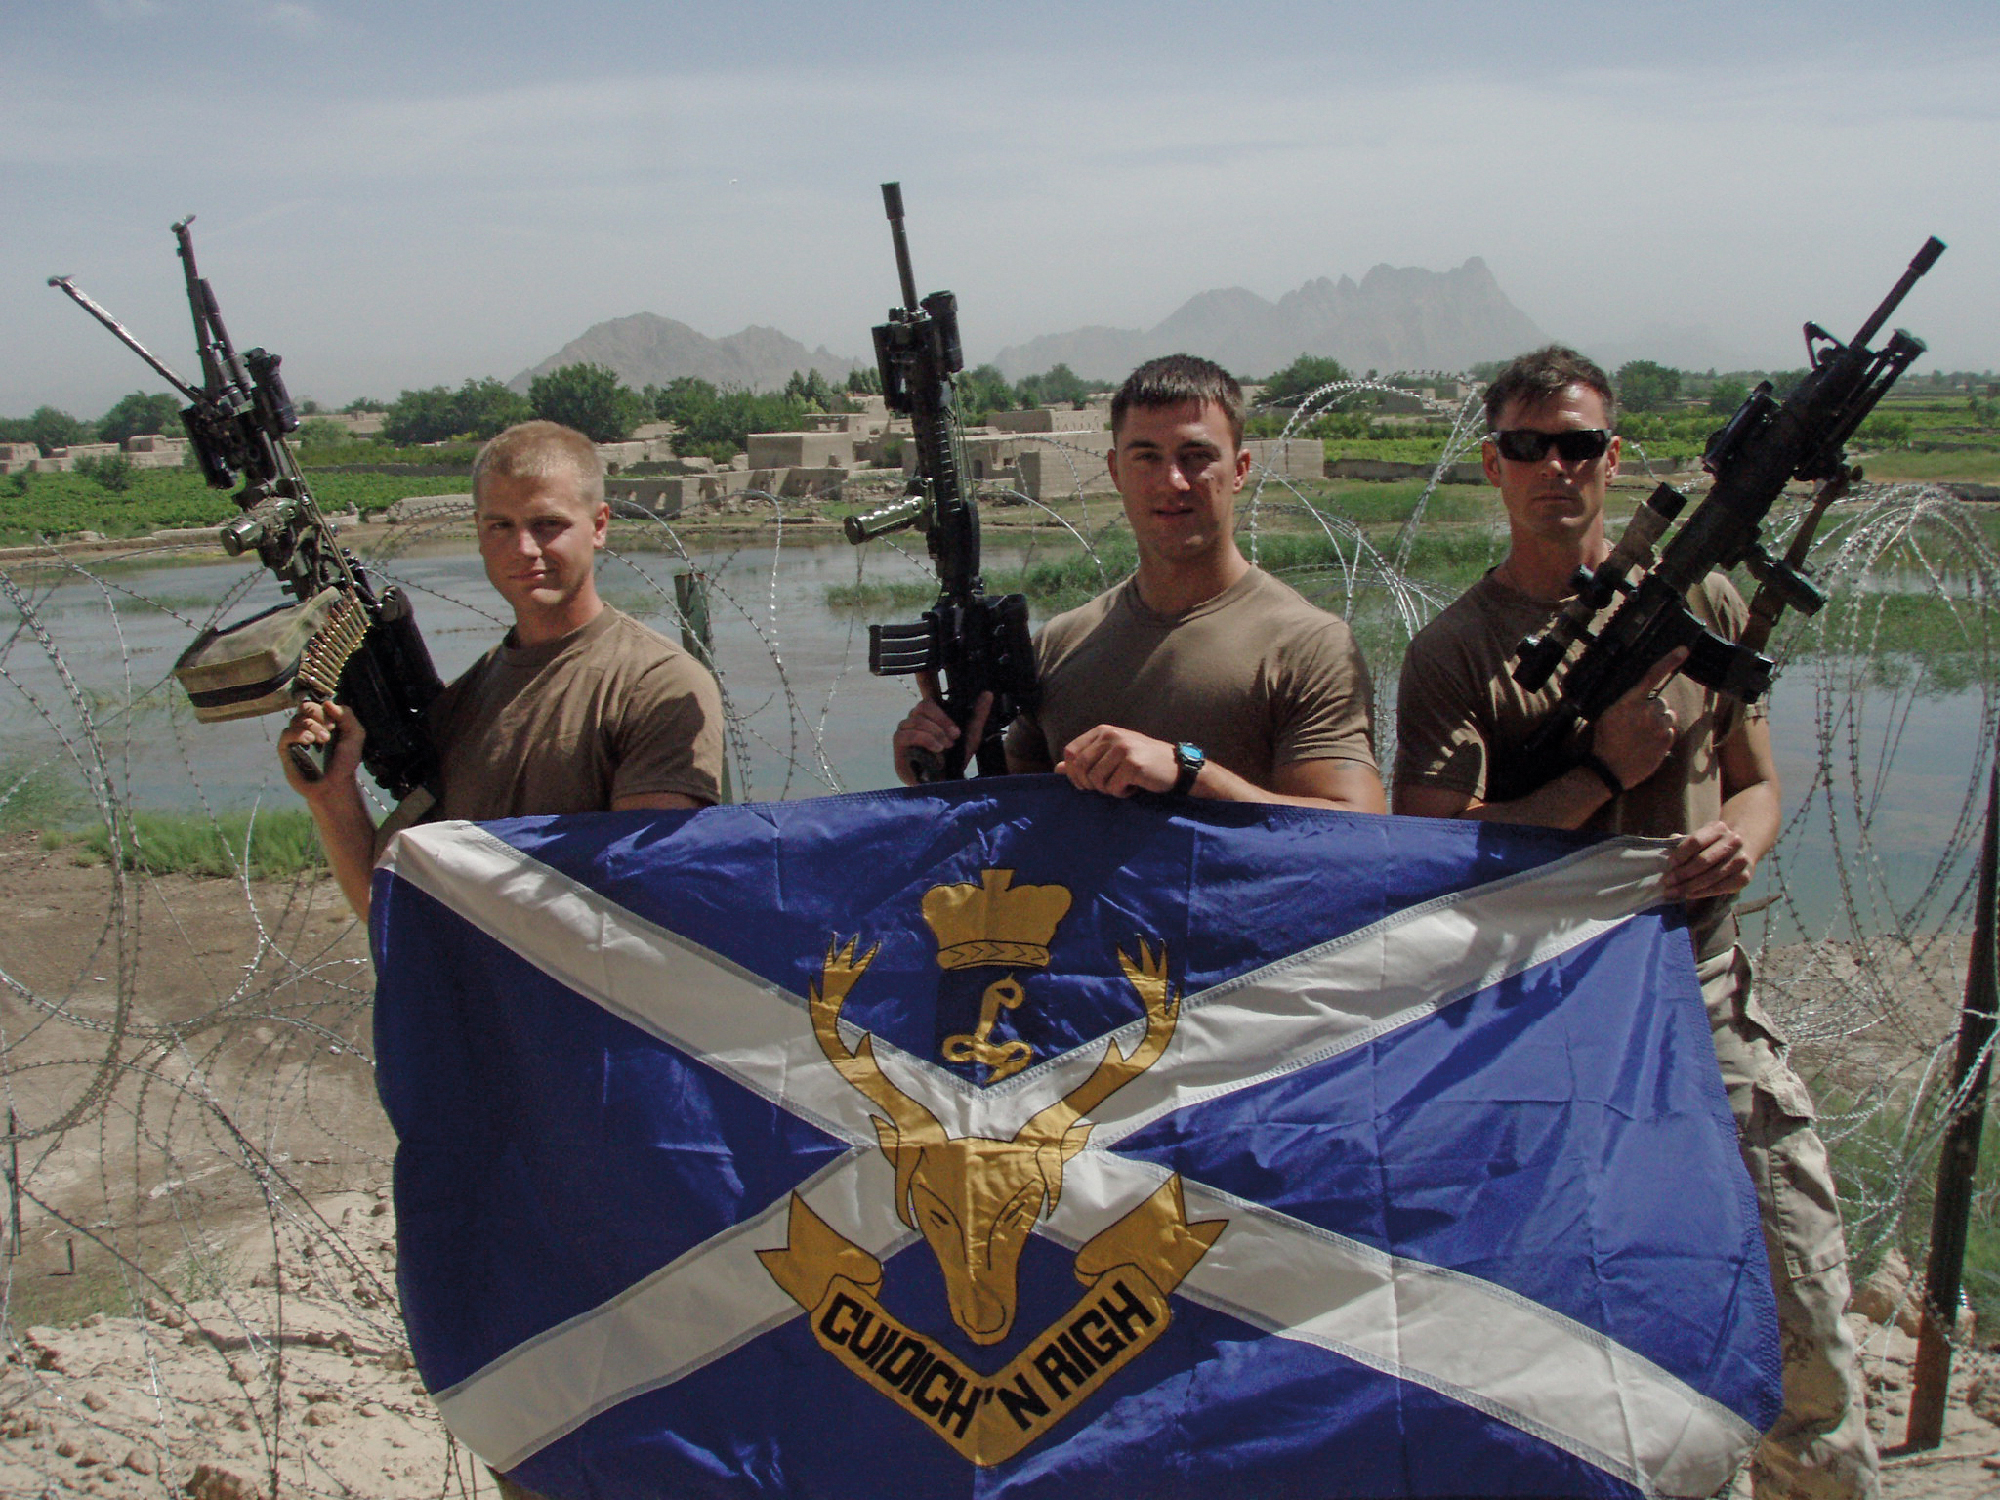 Corporals Josh Muir, Emil Kowalczyk and Max Birkner with Seaforth camp flag, on the wall at Forward Operating Base Sper wan ghar, May 2010.